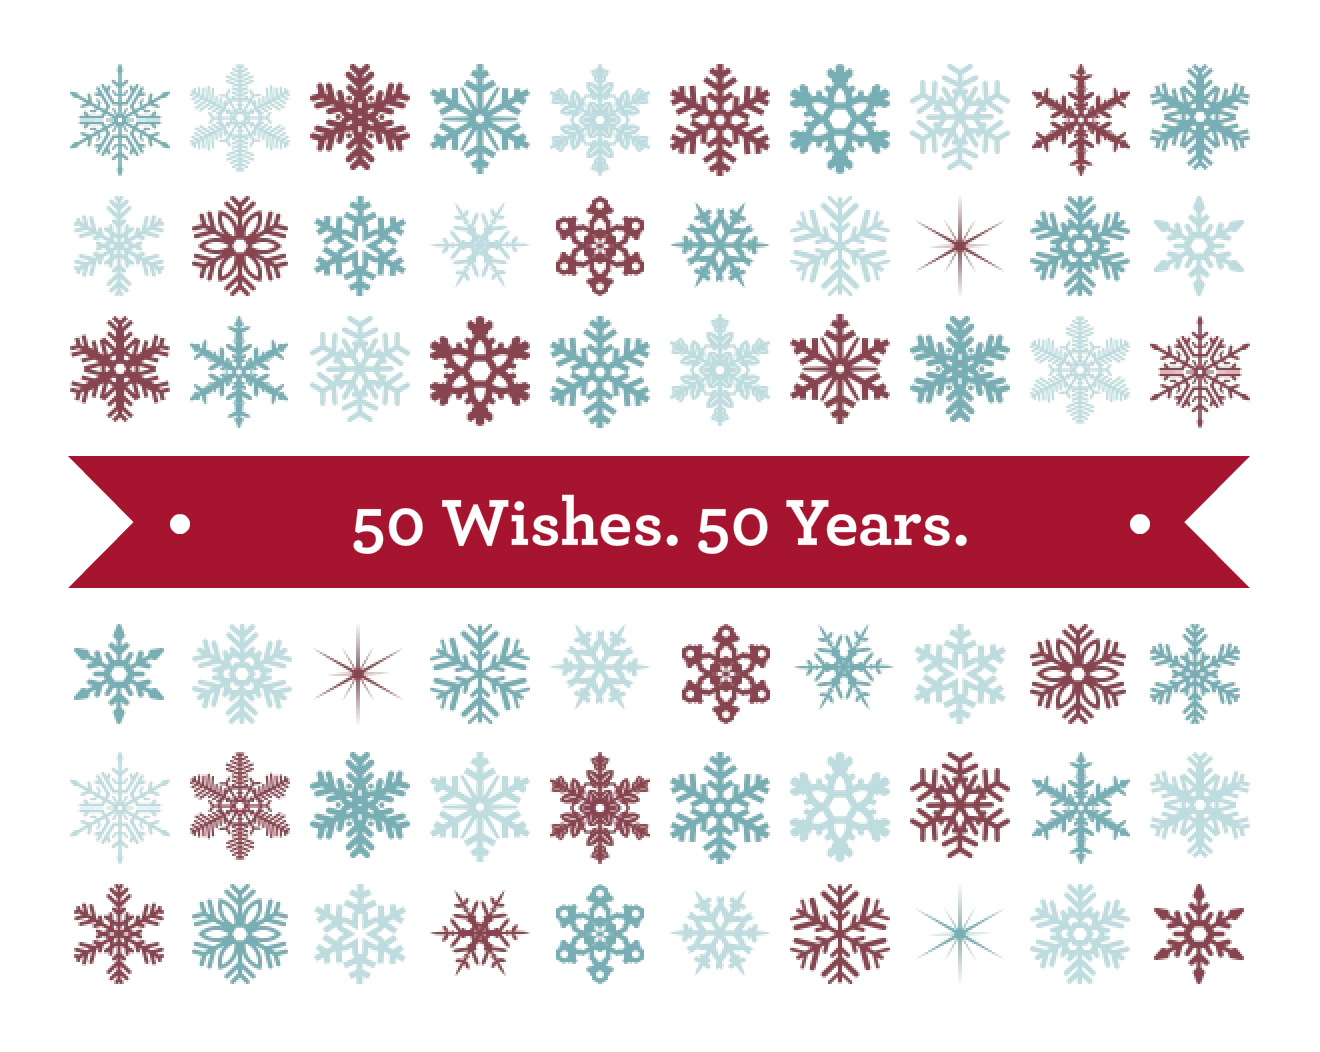 50 Wishes. 50 Years.